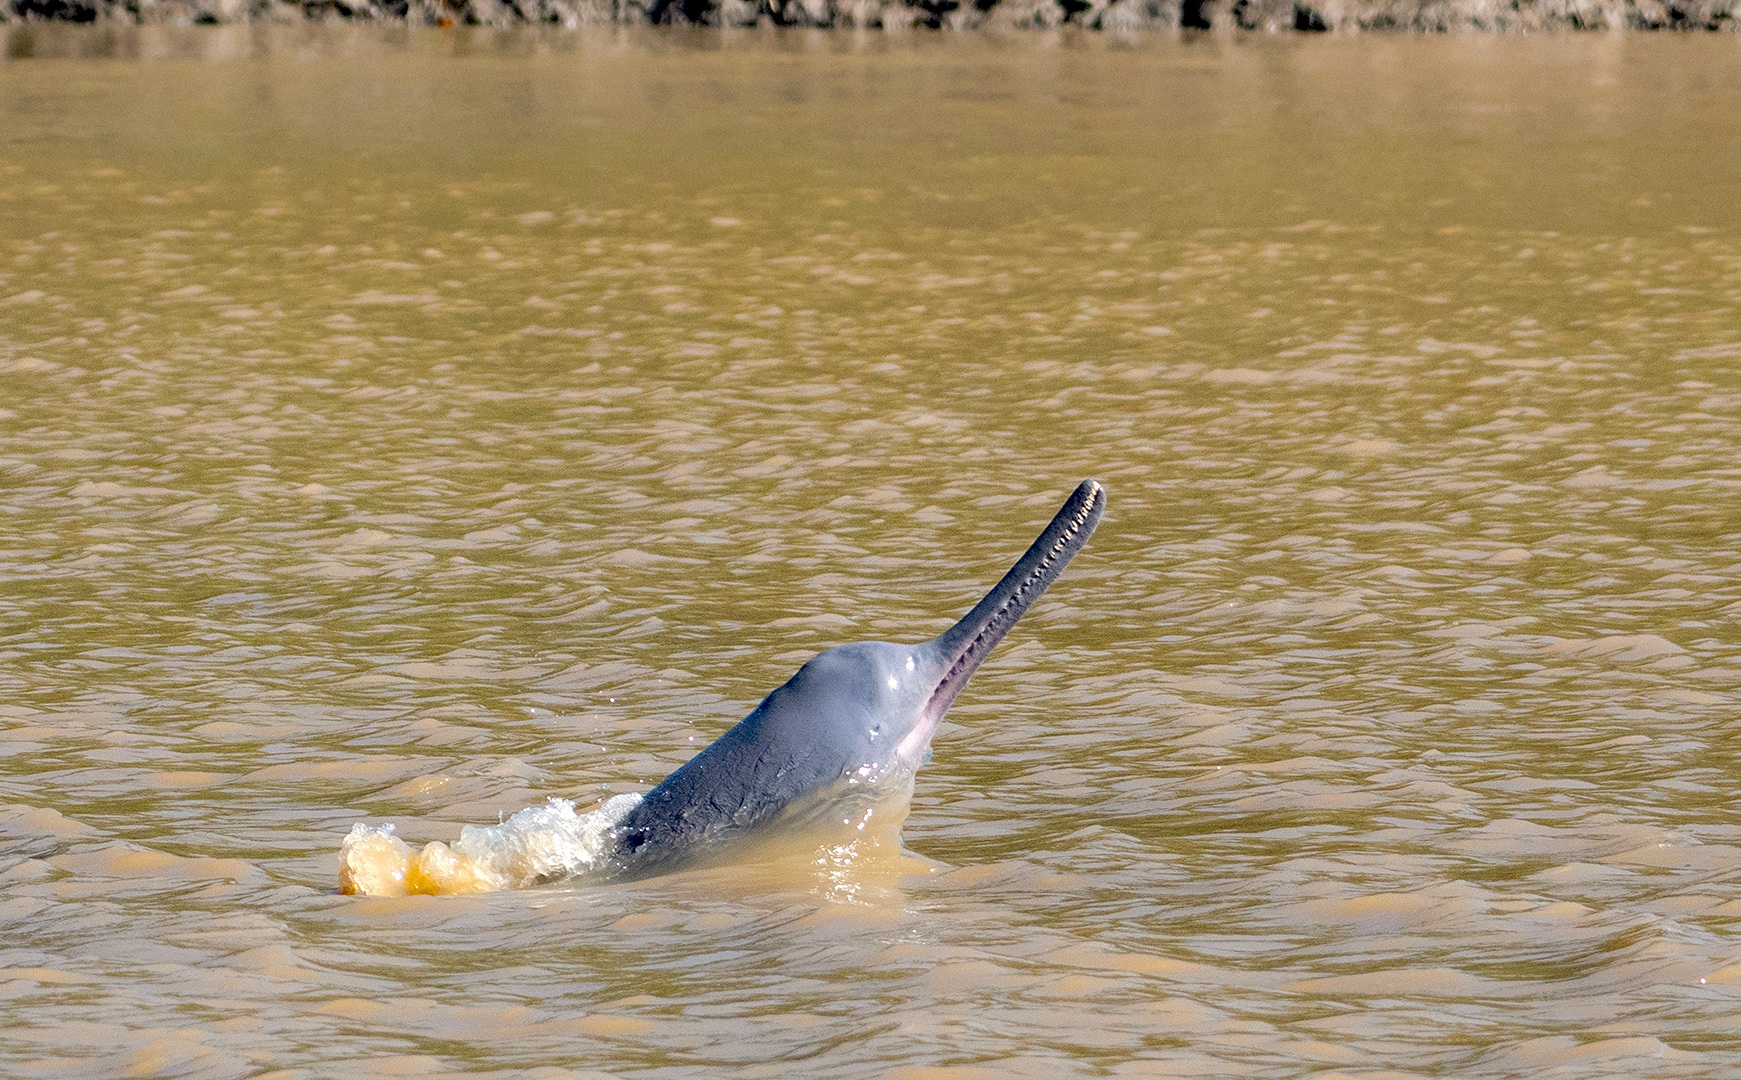 South Asian river dolphins inhabit the Indus, Ganga, Brahmaputra, Meghna, and Karnaphuli-Sangu river basins of Pakistan, India, Nepal, and Bangladesh. Photo: Dhiraj Ch Das  A Ganges river dolphin surfaces in the Brahmaputra River in Assam's Kaziranga Tiger Reserve. Getting such a picture of this elusive river dolphin is rare, as the species does not stay at the surface for very long. Cover Photo: Aditya Panda